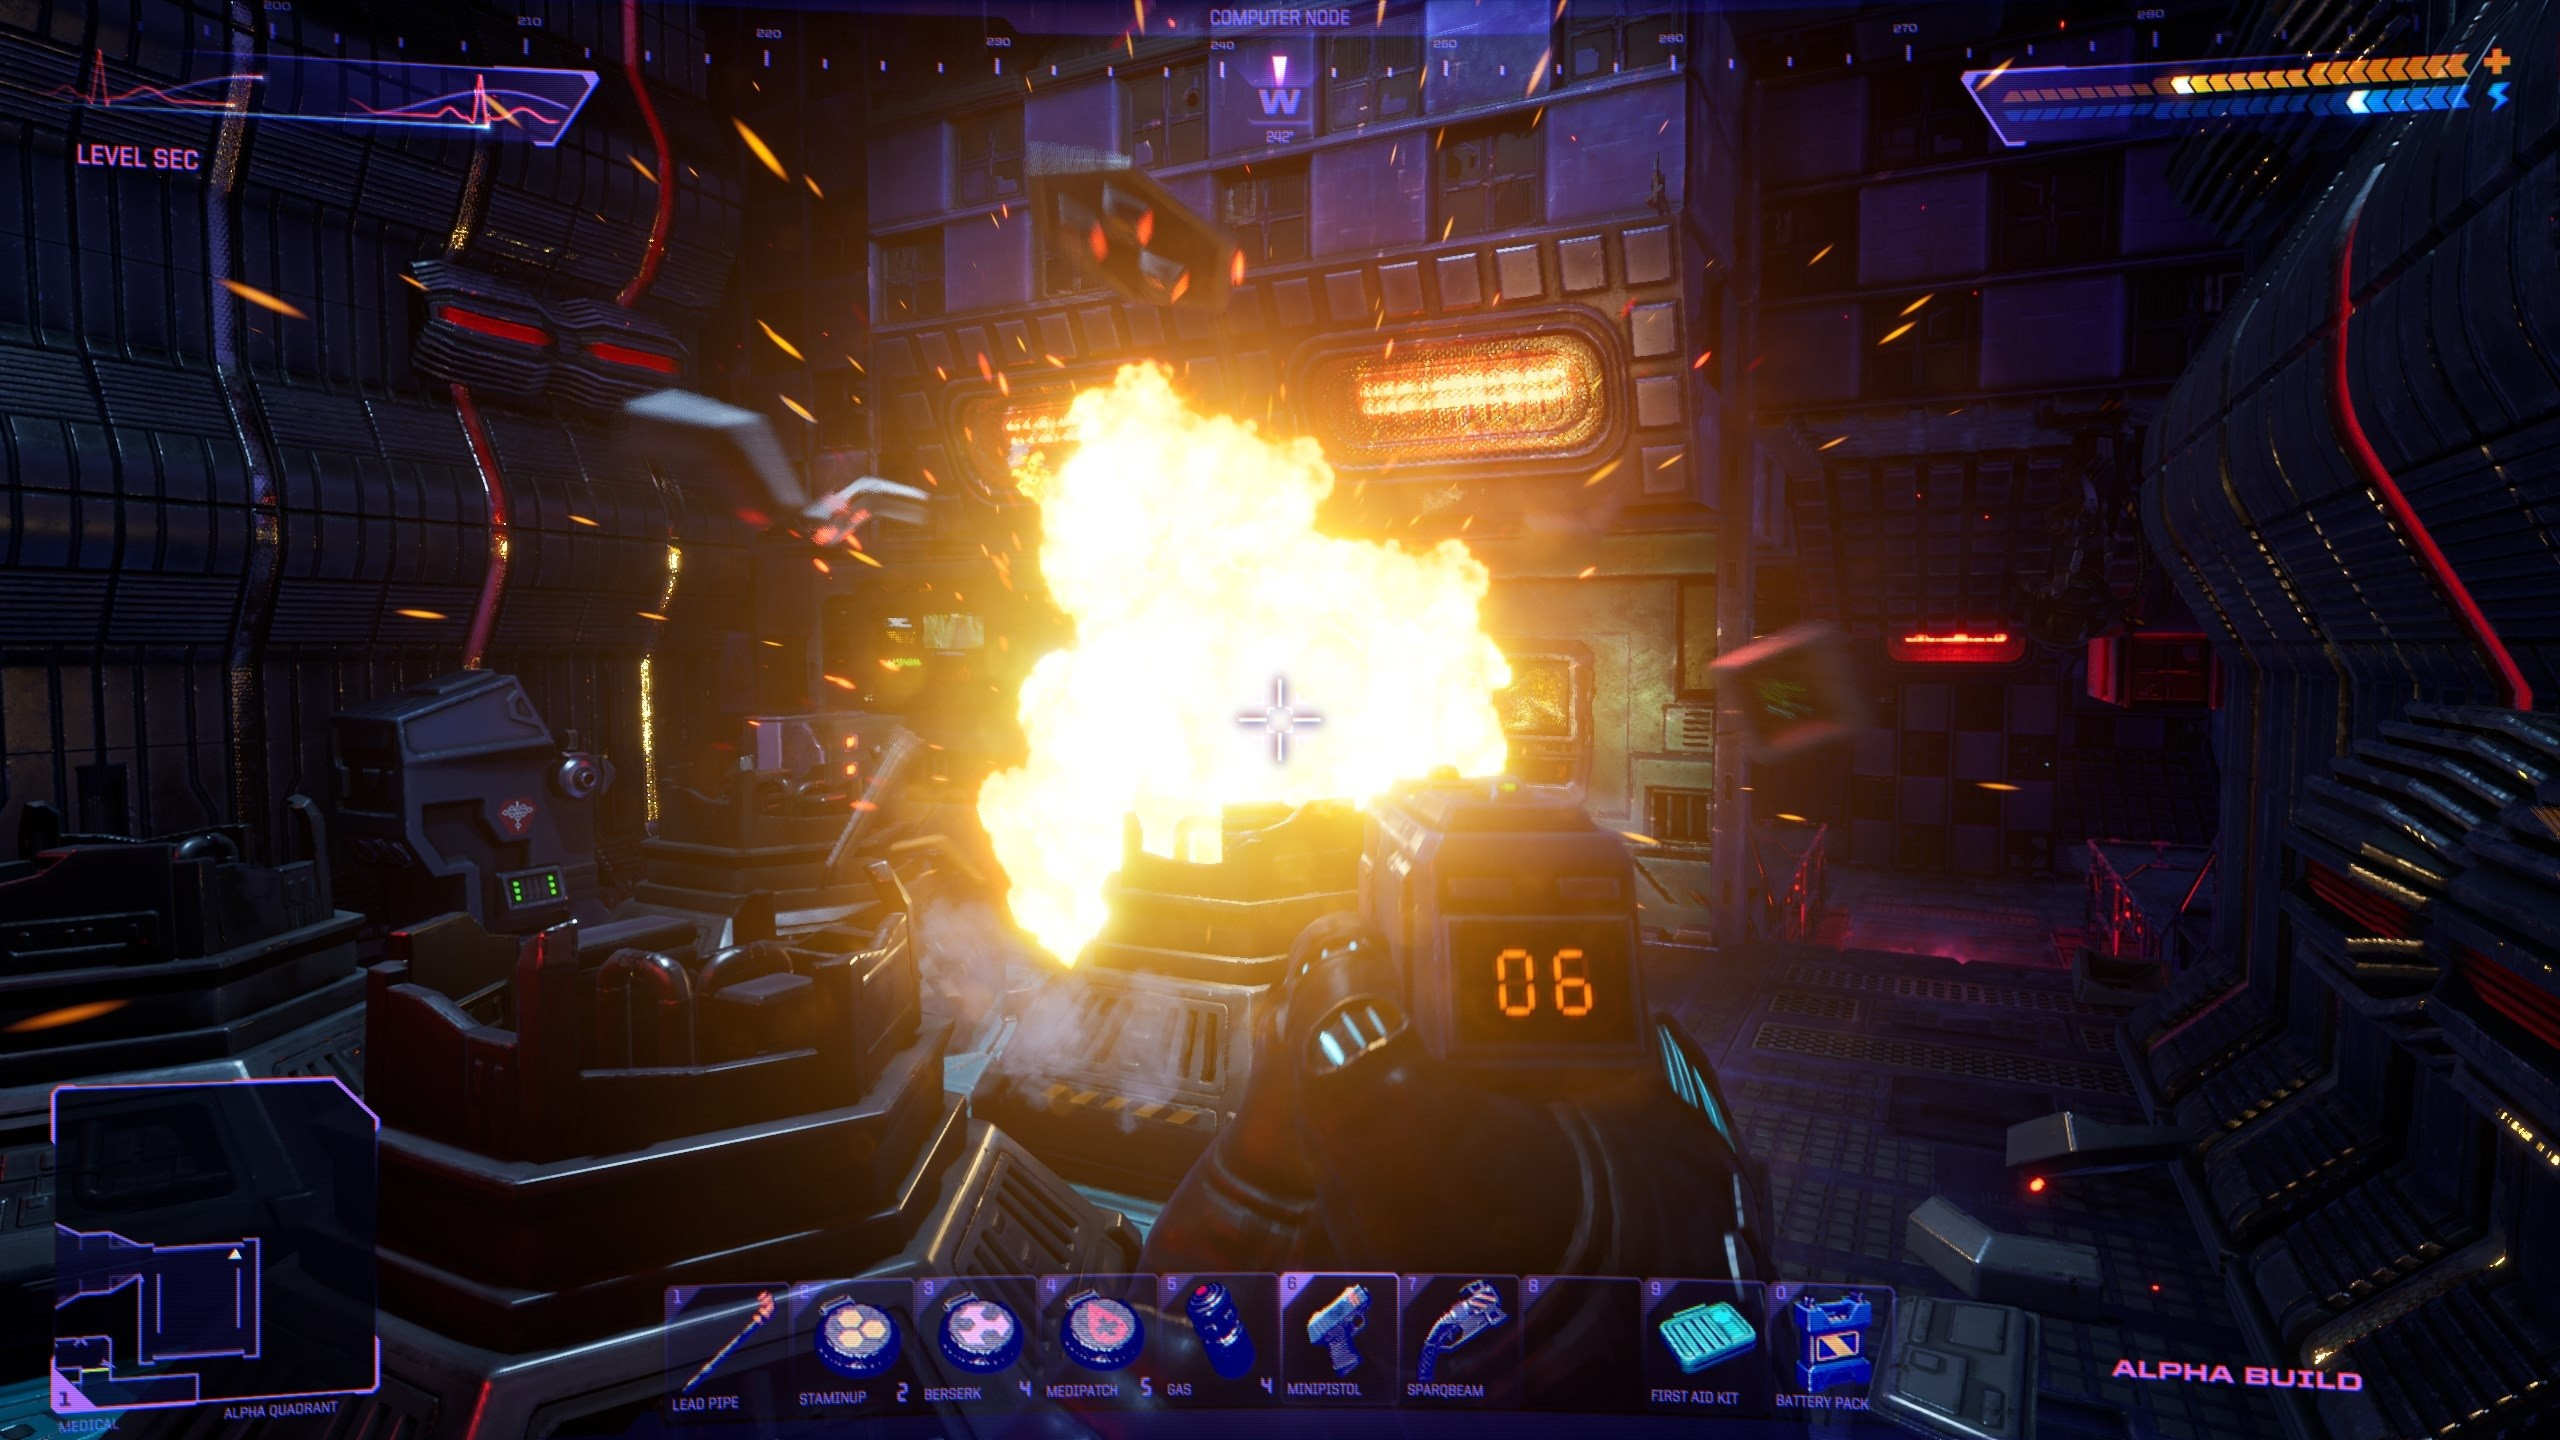 Media asset in full size related to 3dfxzone.it news item entitled as follows: Teaser trailer, demo per PC e screenshots del remake di System Shock | Image Name: news31742_System-Shock-Screenshot_3.jpg